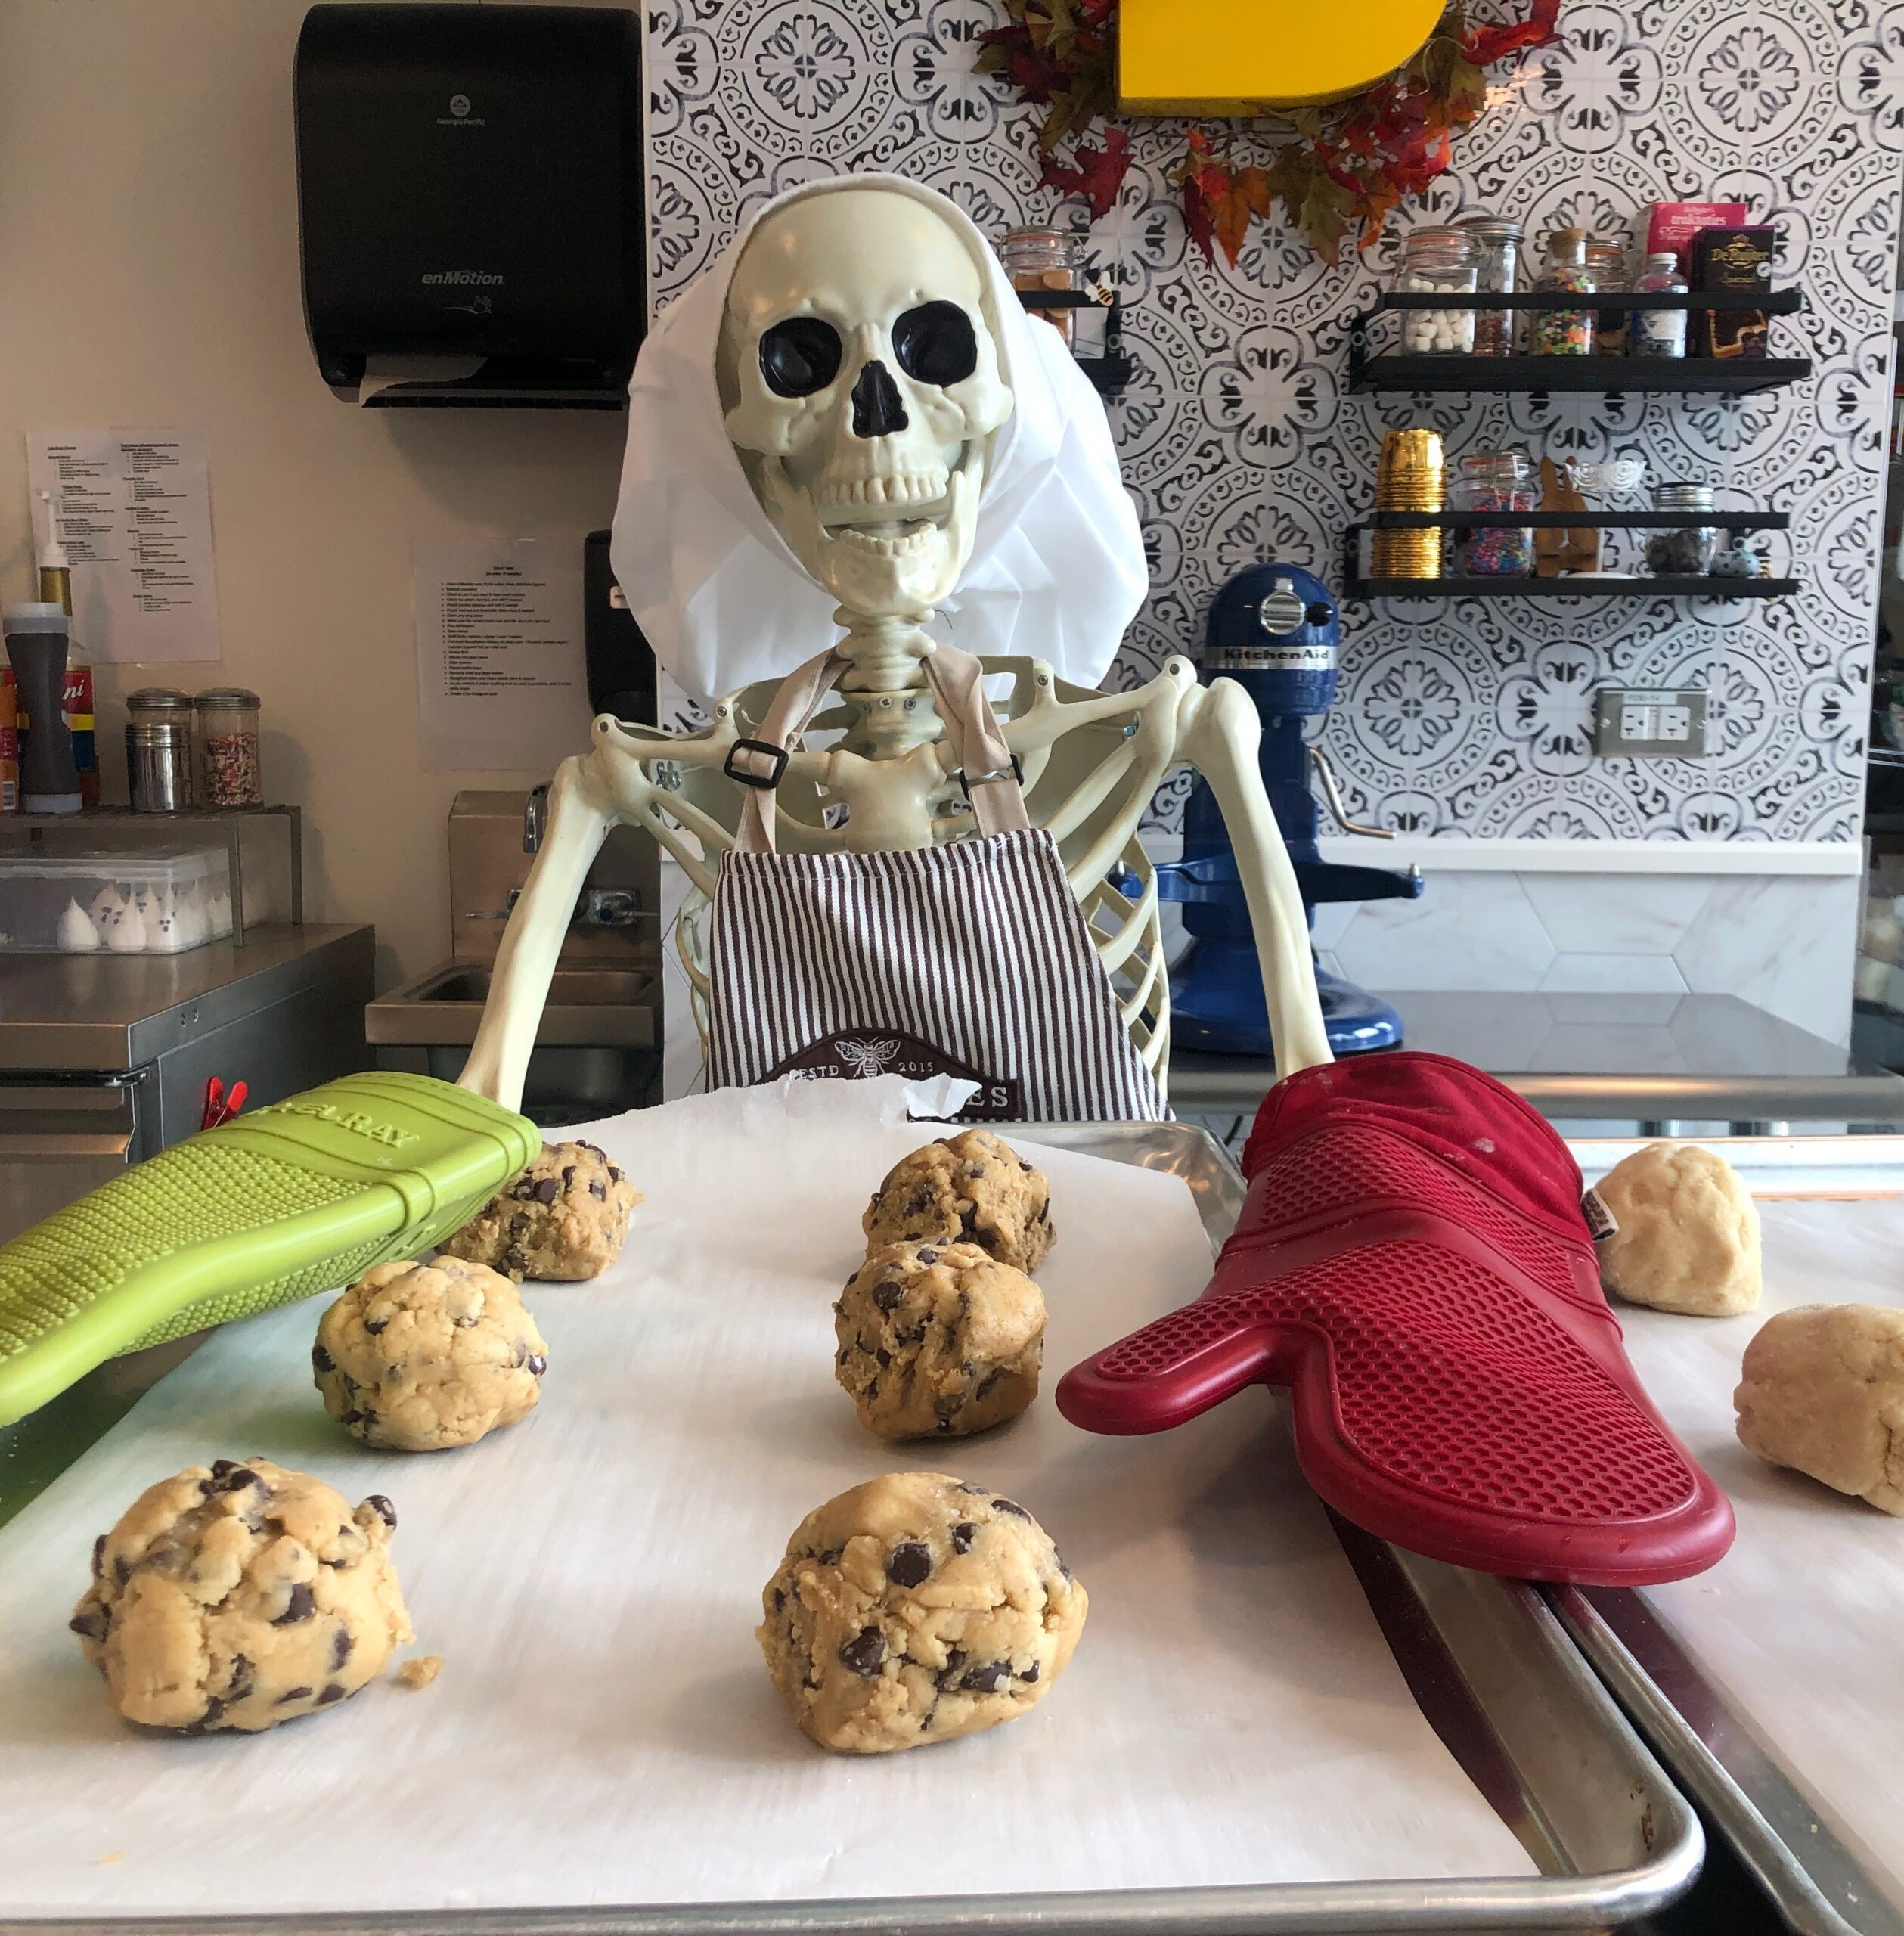 Buzzy Bakes owner Carrie Haub doesn't play around when it comes to Halloween season.